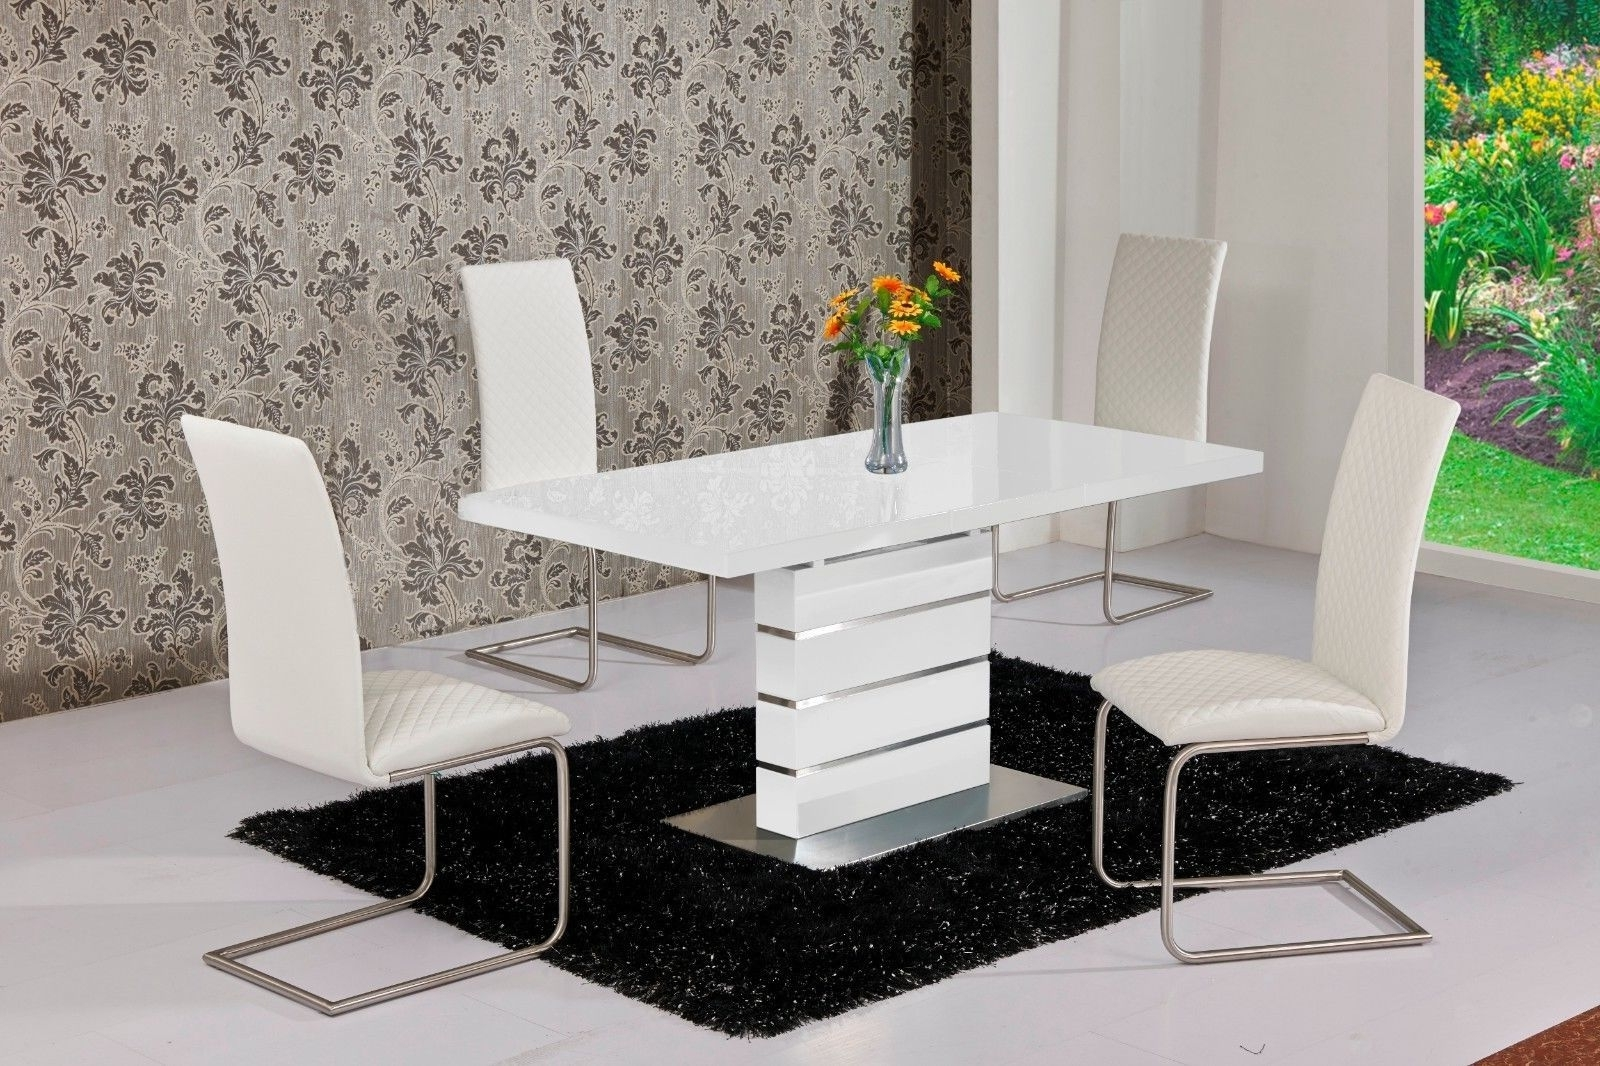 Mace High Gloss Extending 120 160 Dining Table & Chair Set – White For Fashionable Extending Dining Tables With 6 Chairs (View 3 of 25)